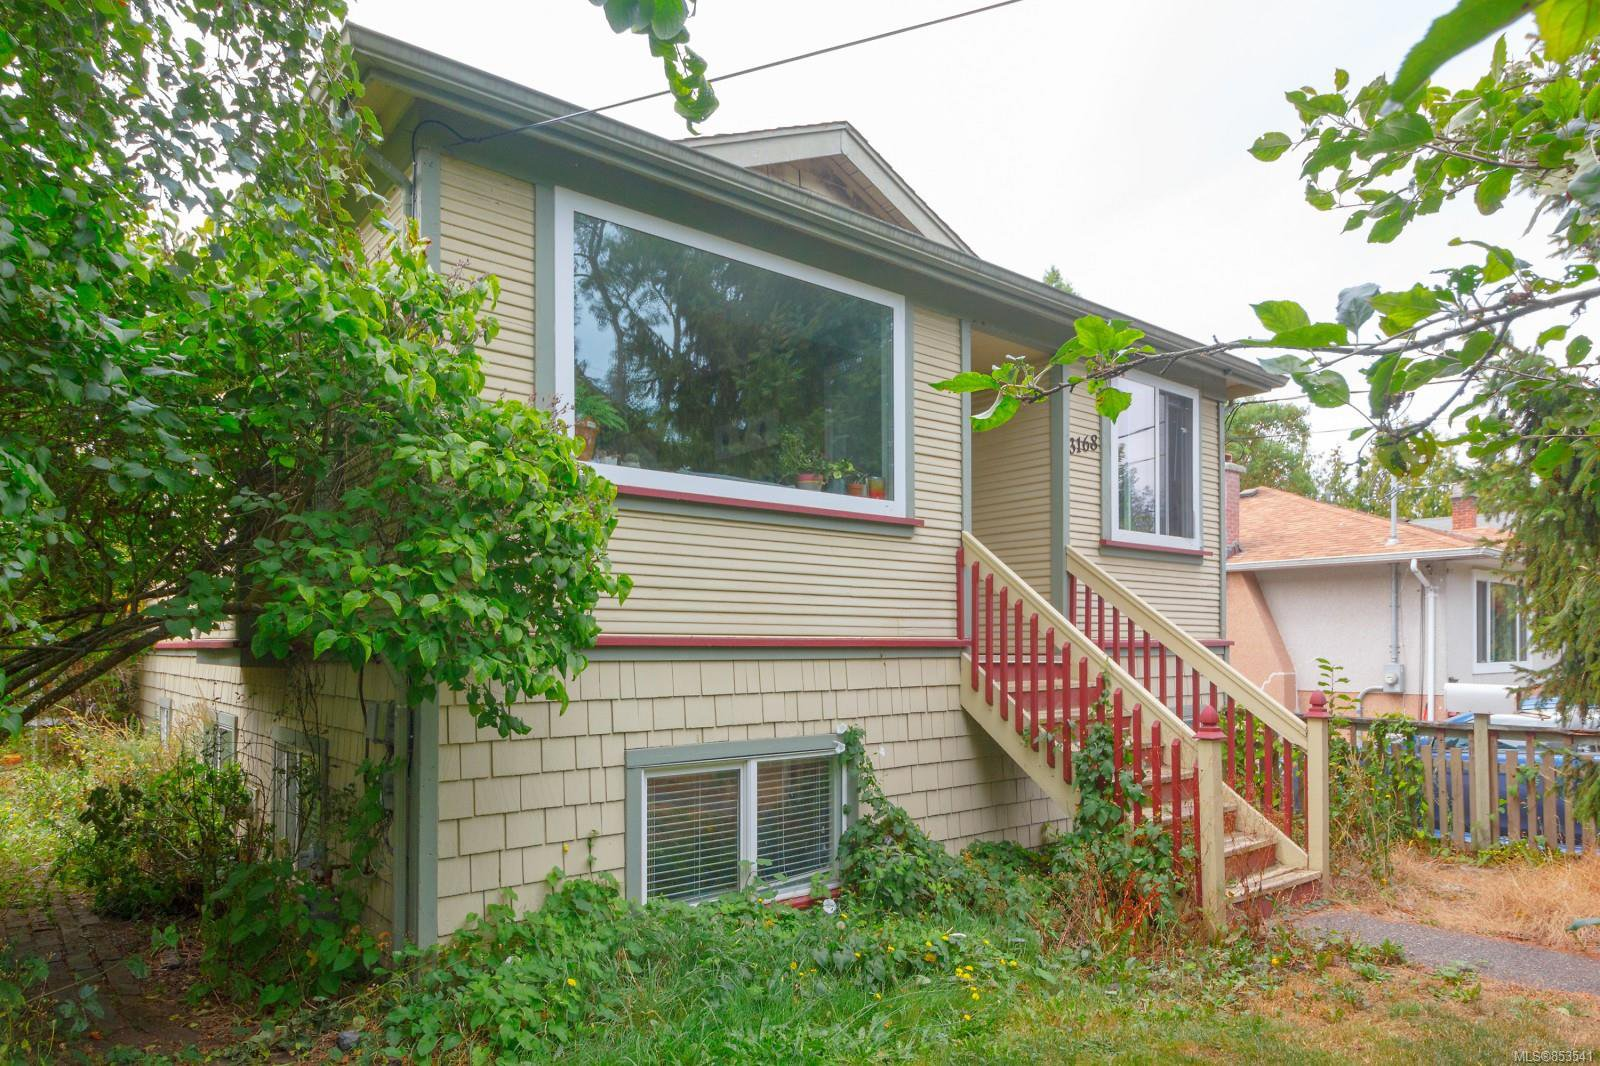 Main Photo: 3168 Jackson St in : Vi Mayfair House for sale (Victoria)  : MLS®# 853541